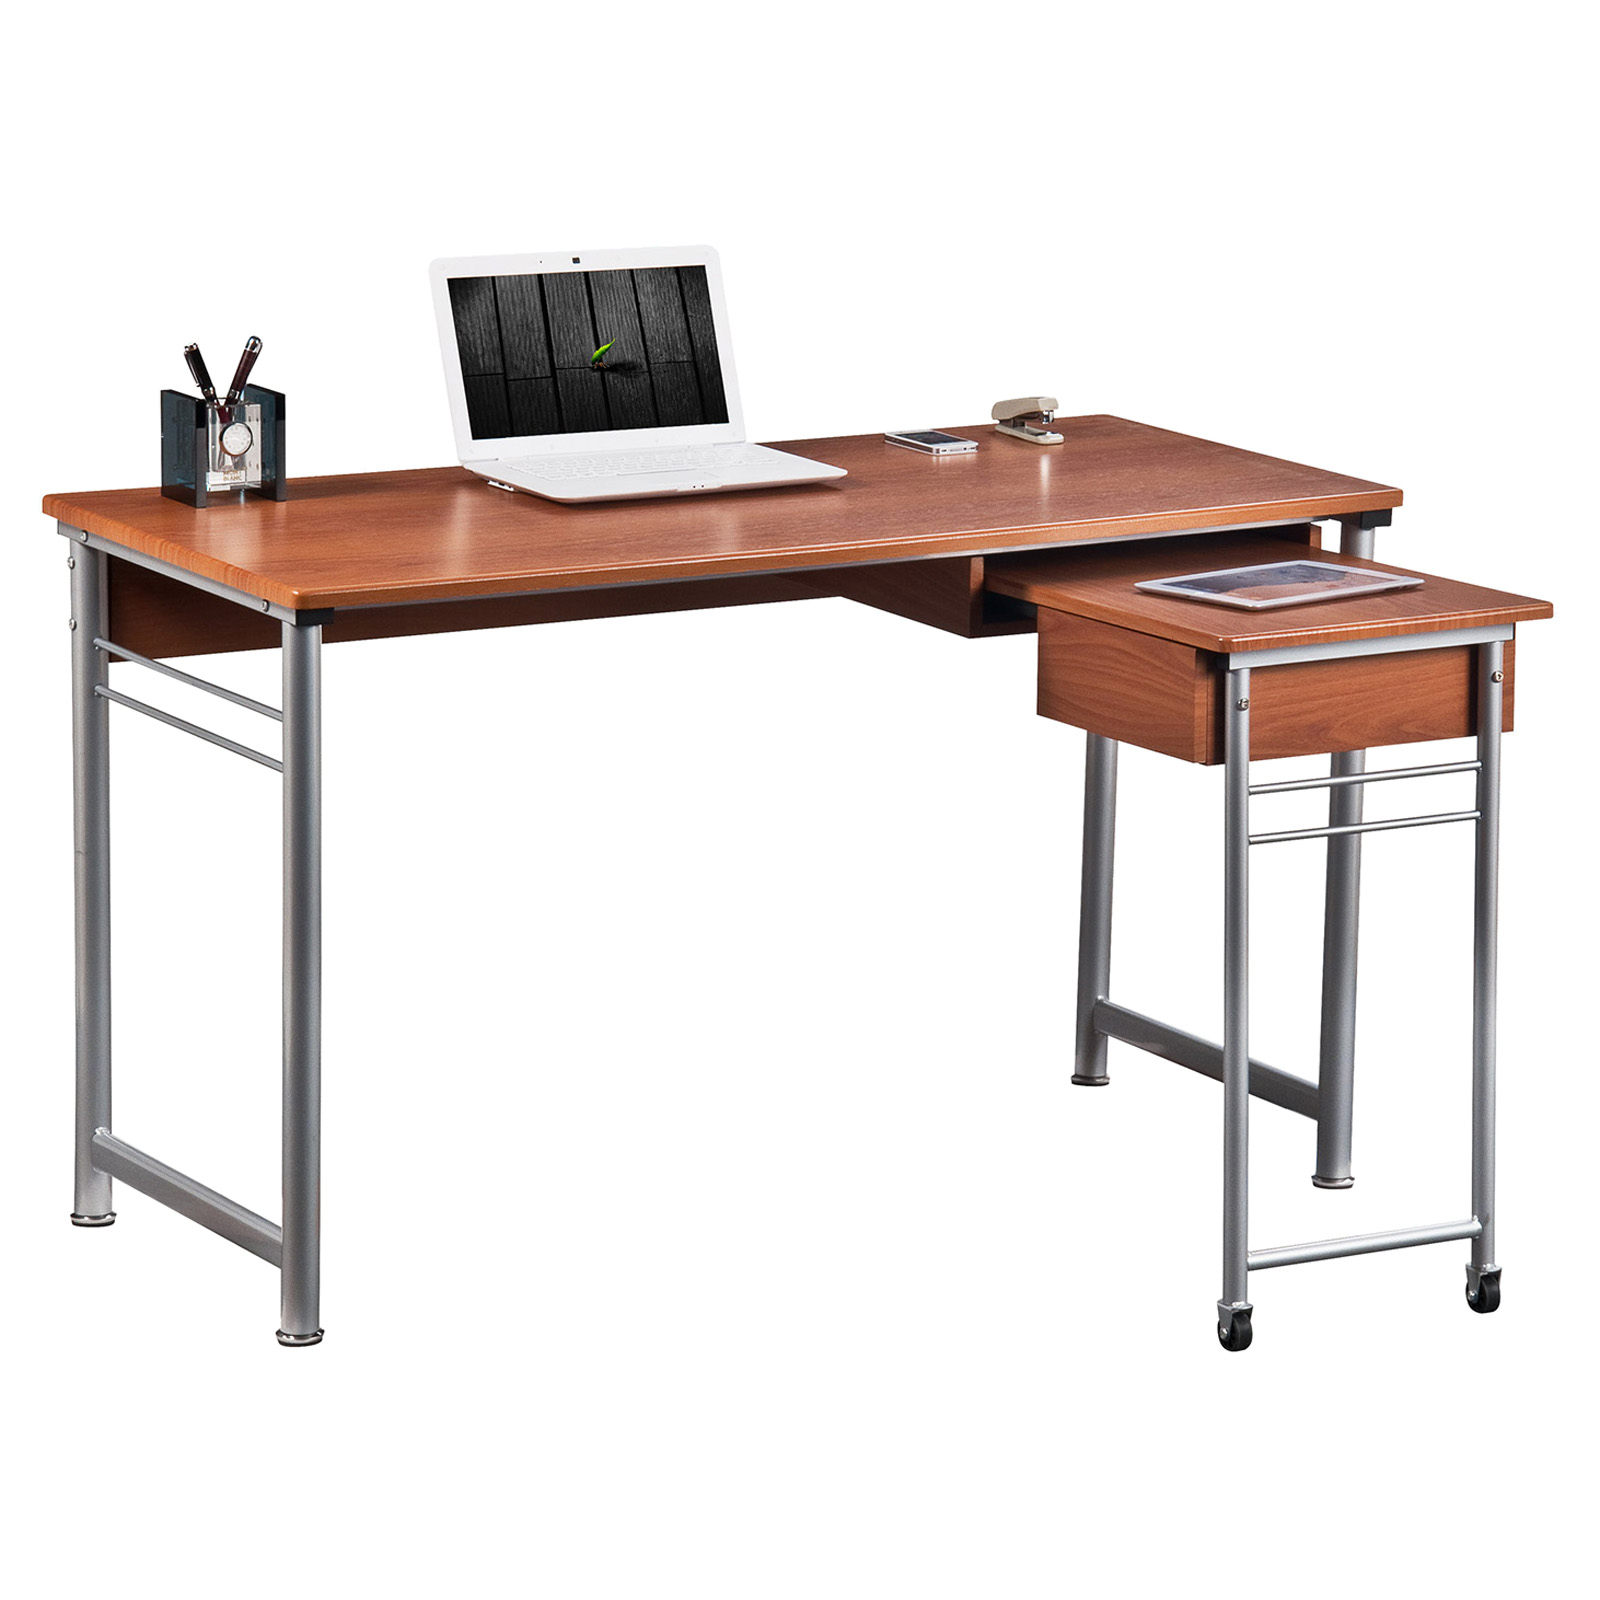 Techni mobili rta 224r retractable desk at hayneedle for Center mobili outlet